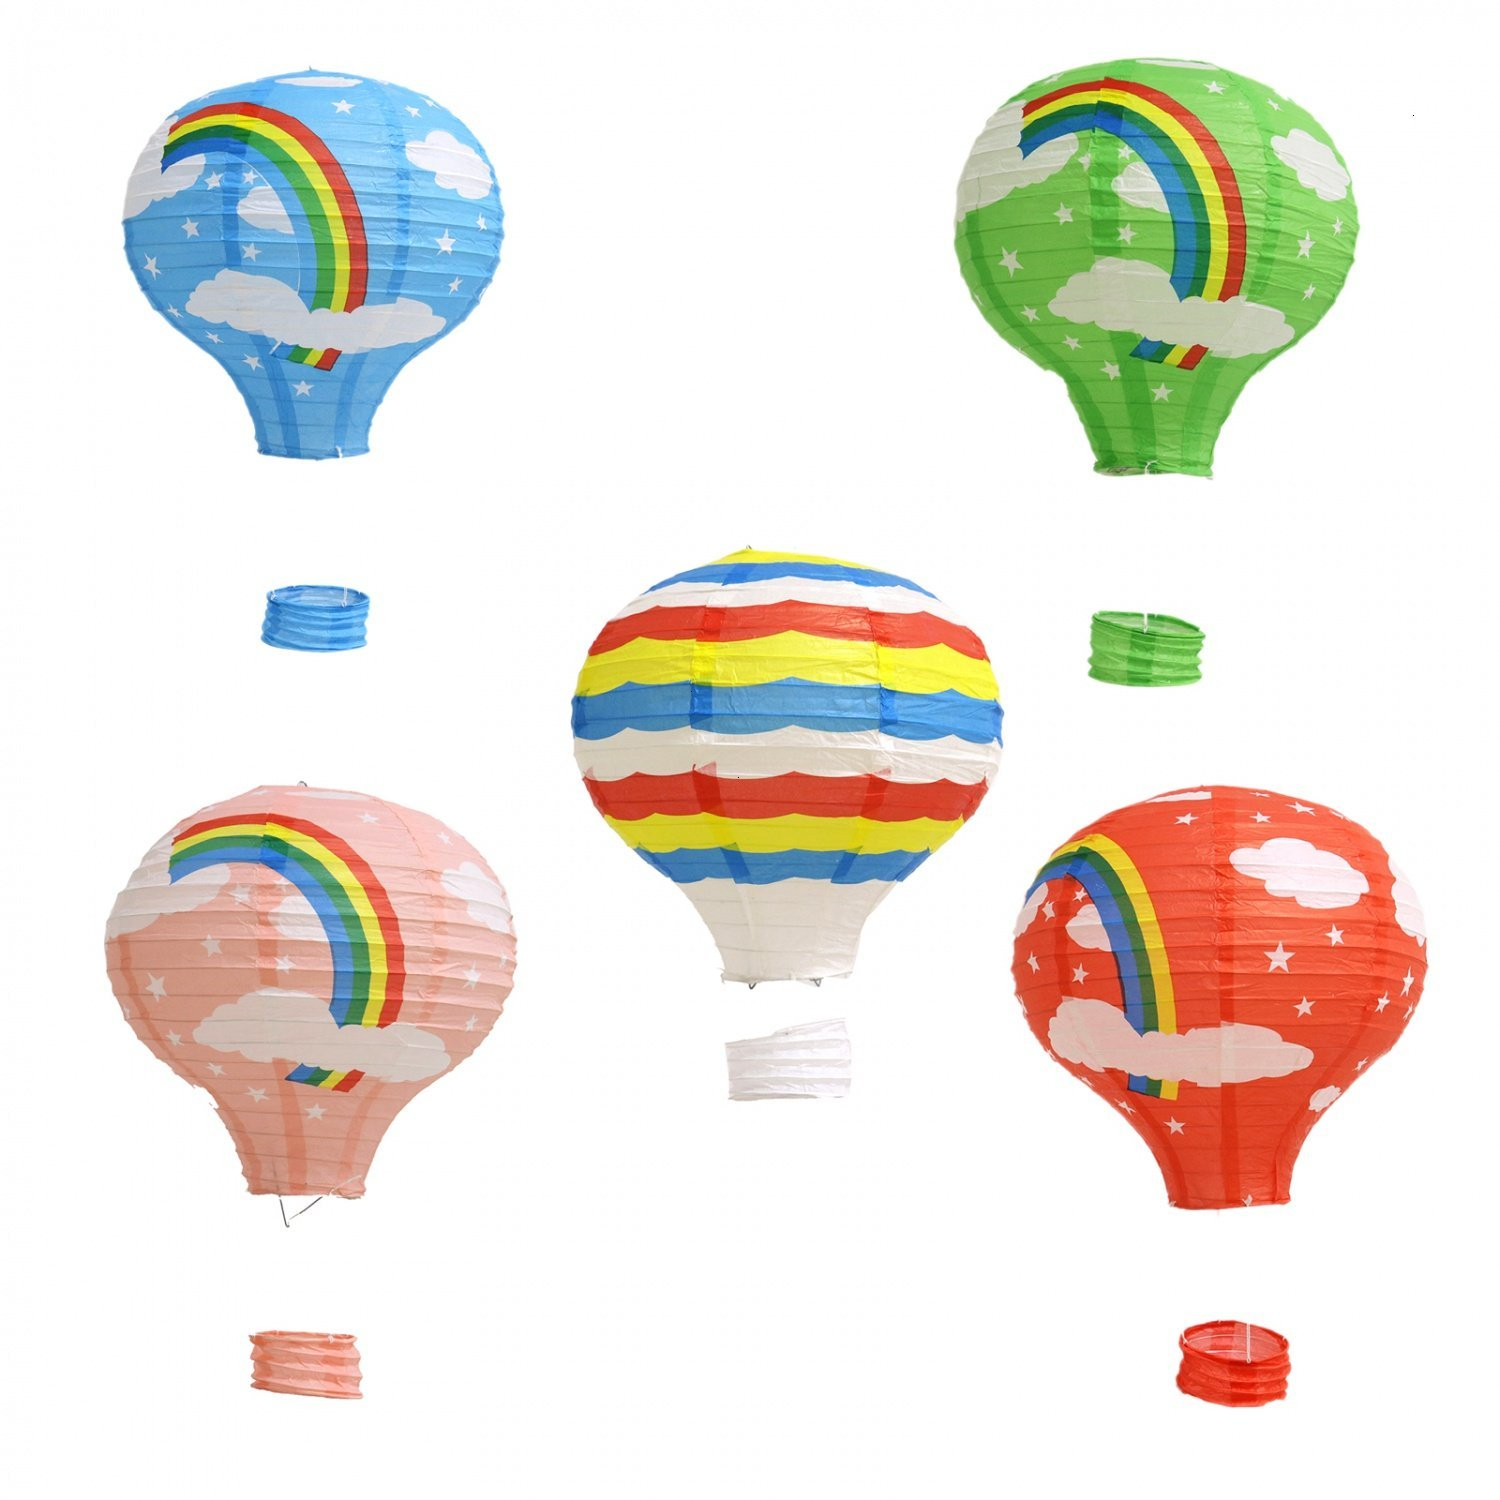 Buorsa Pack of 5 Paper Lantern 12 Inch Hanging Hot Air Balloon for Christmas Wedding Party Decorations